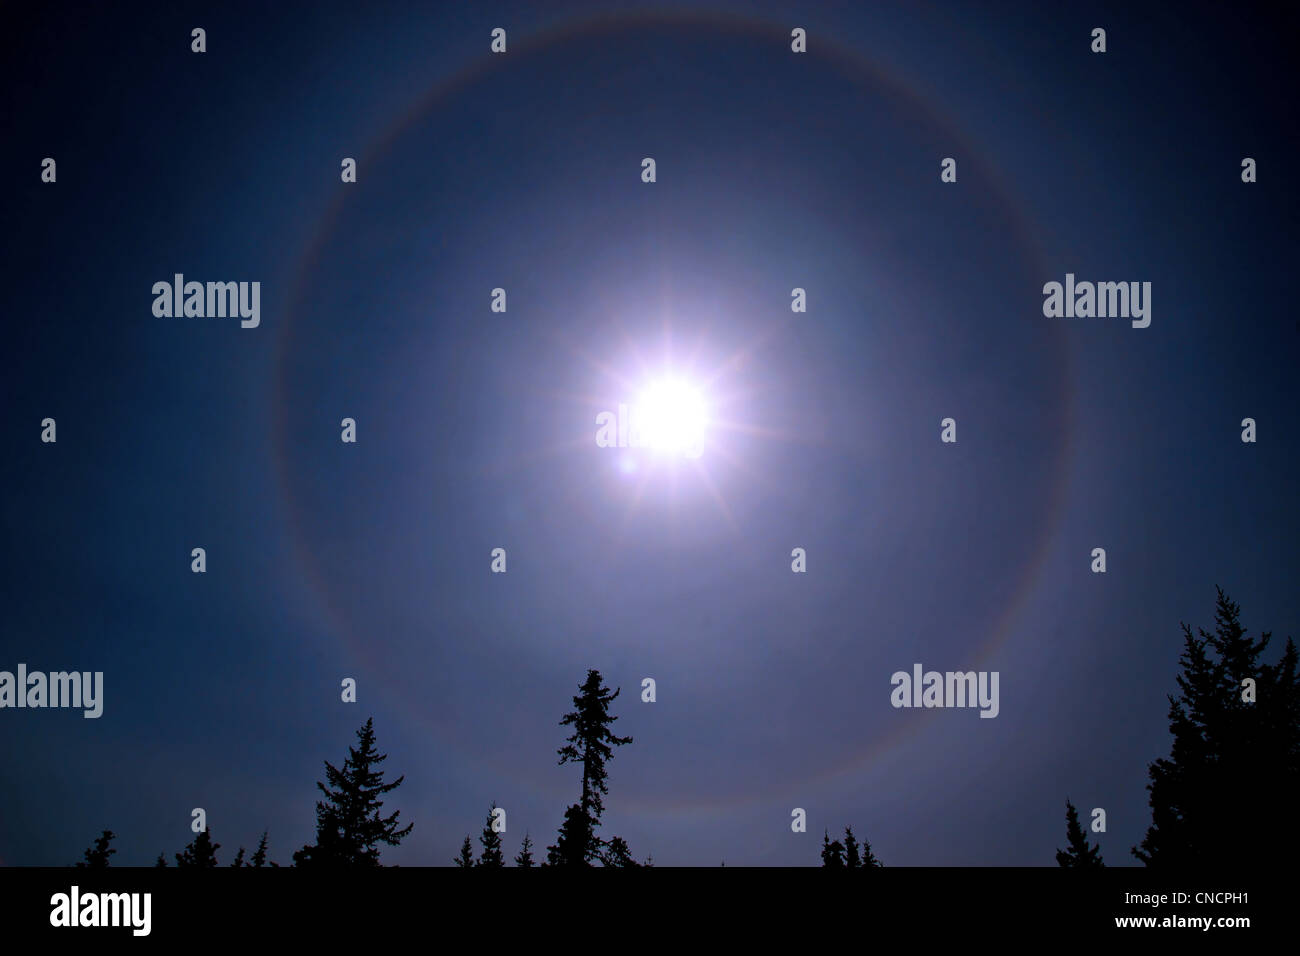 Sunbow around the sun with a blue sky and spruce trees formed when conditions are right with moisture in the air. - Stock Image